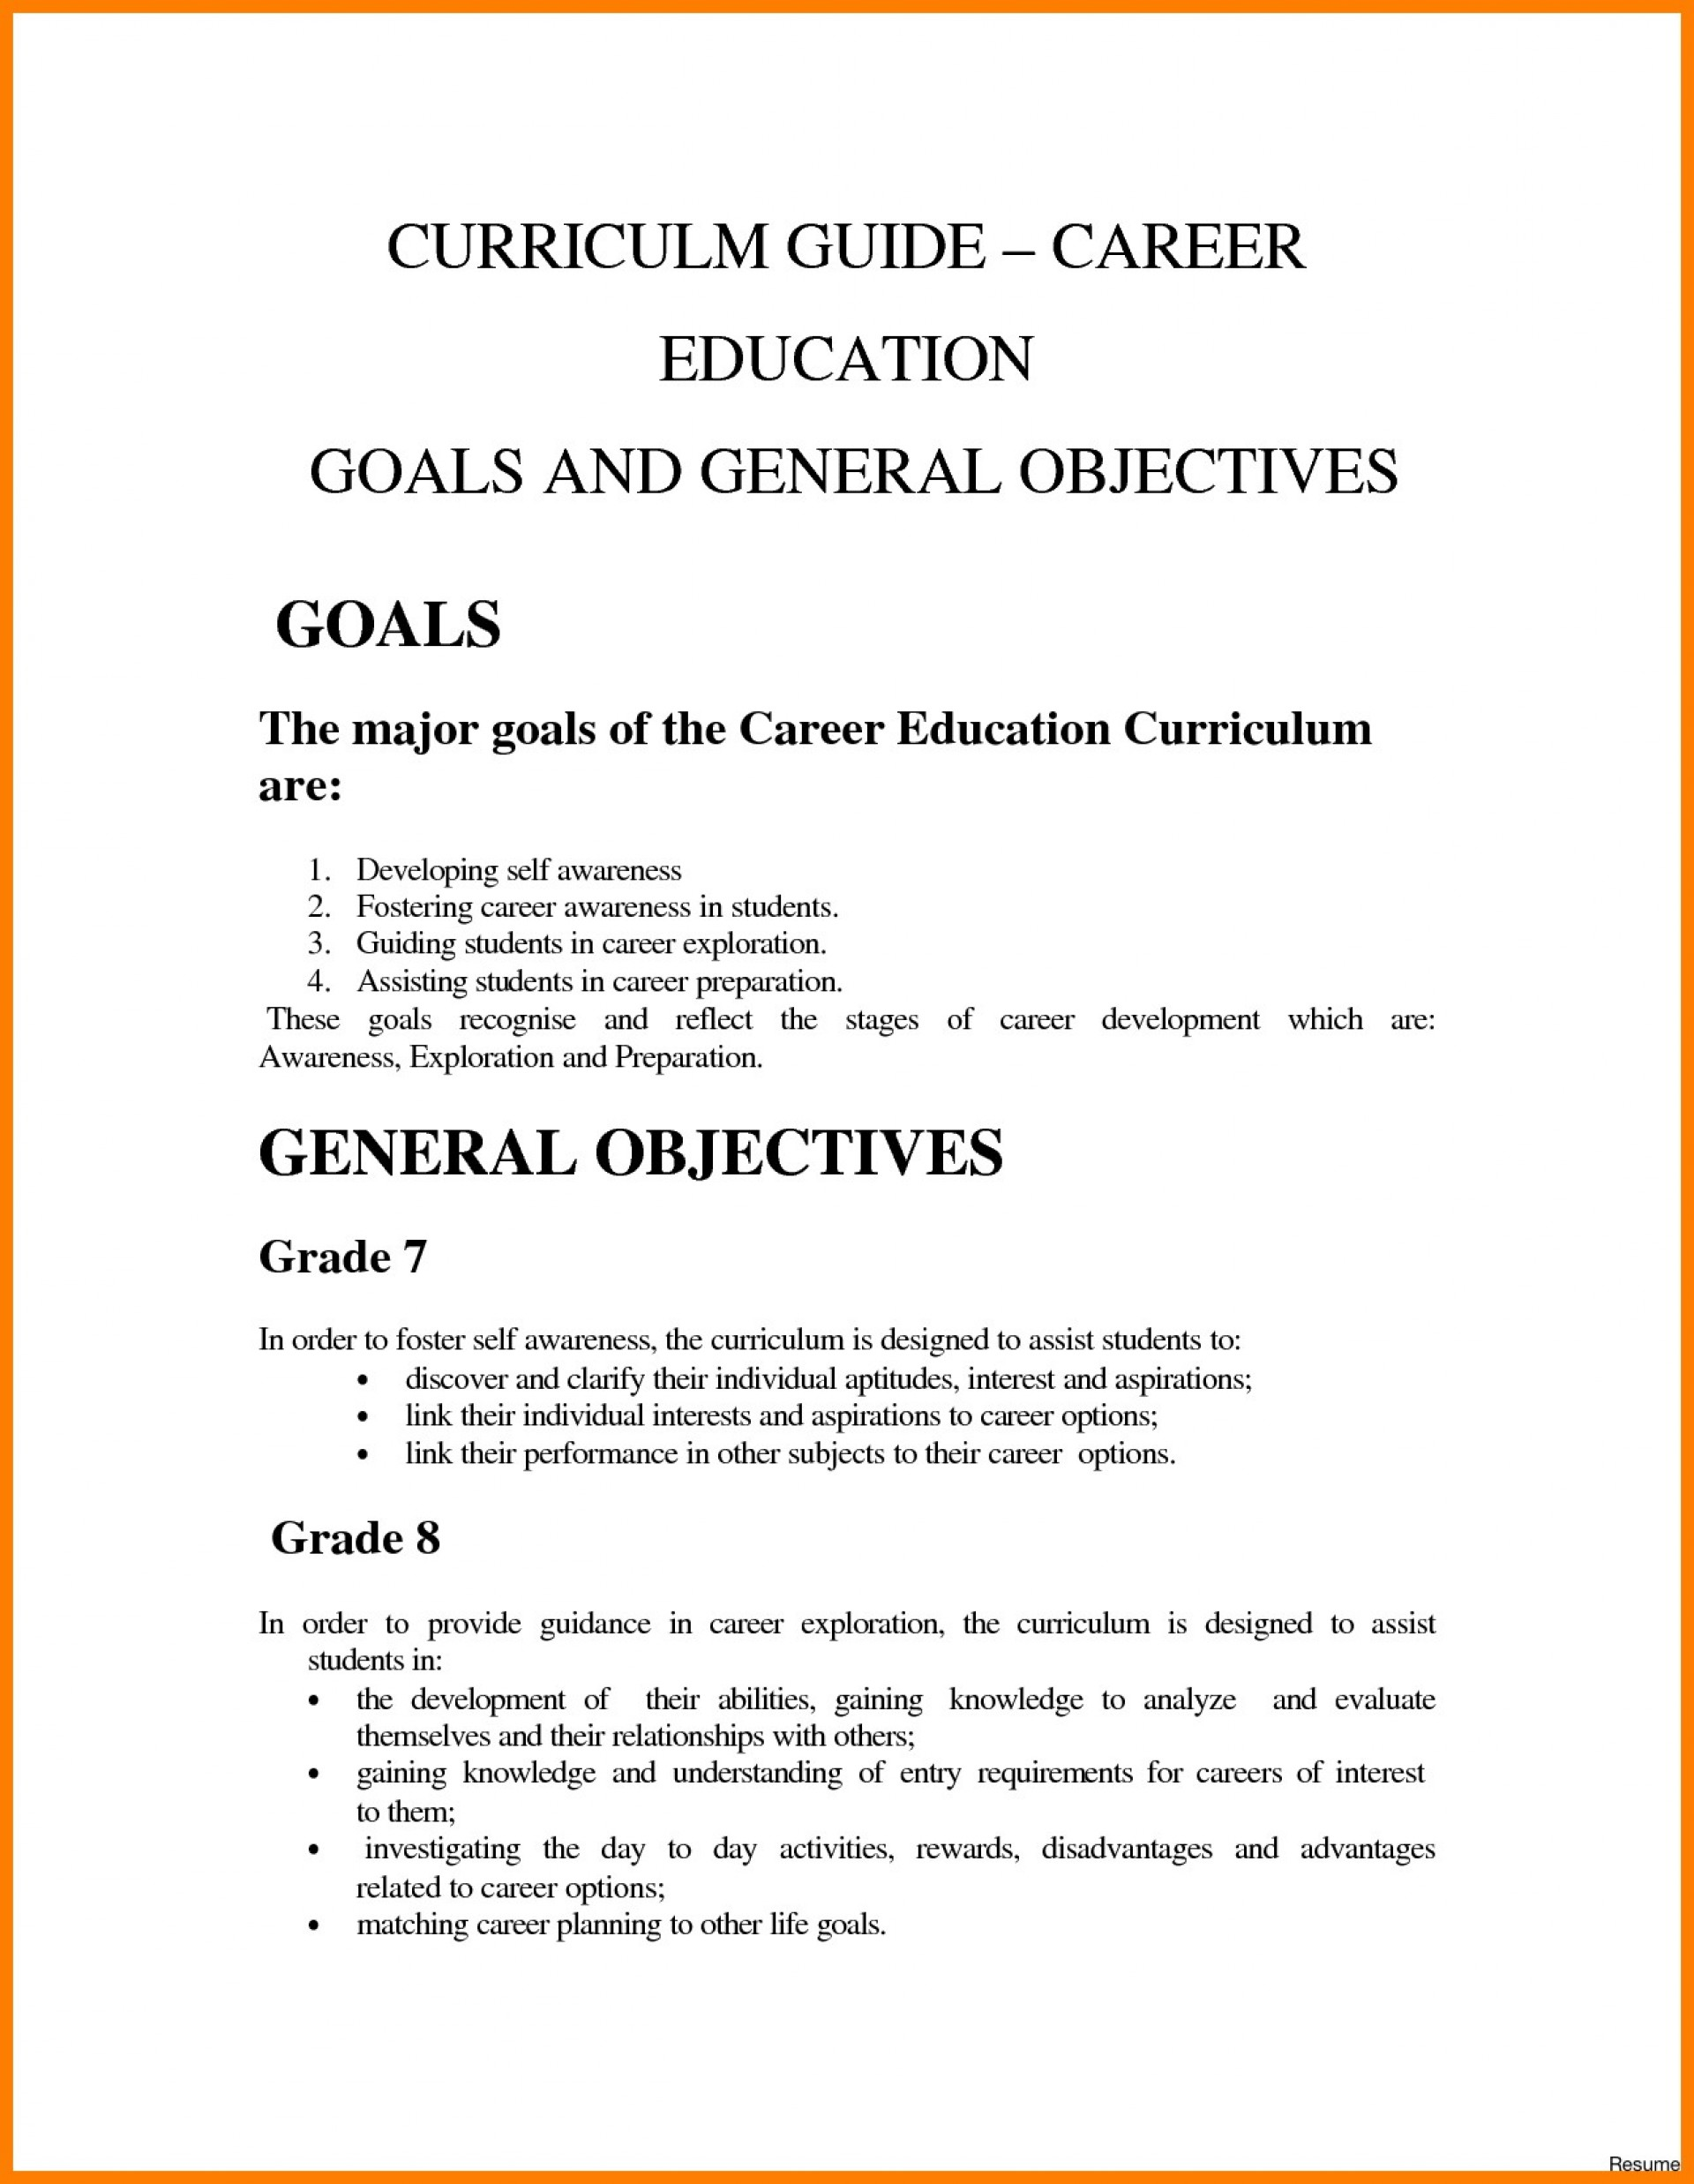 017 Work Goals And Objectivess Career Goal Essay Nursing Of Imposing Examples Future Pdf Educational 1920